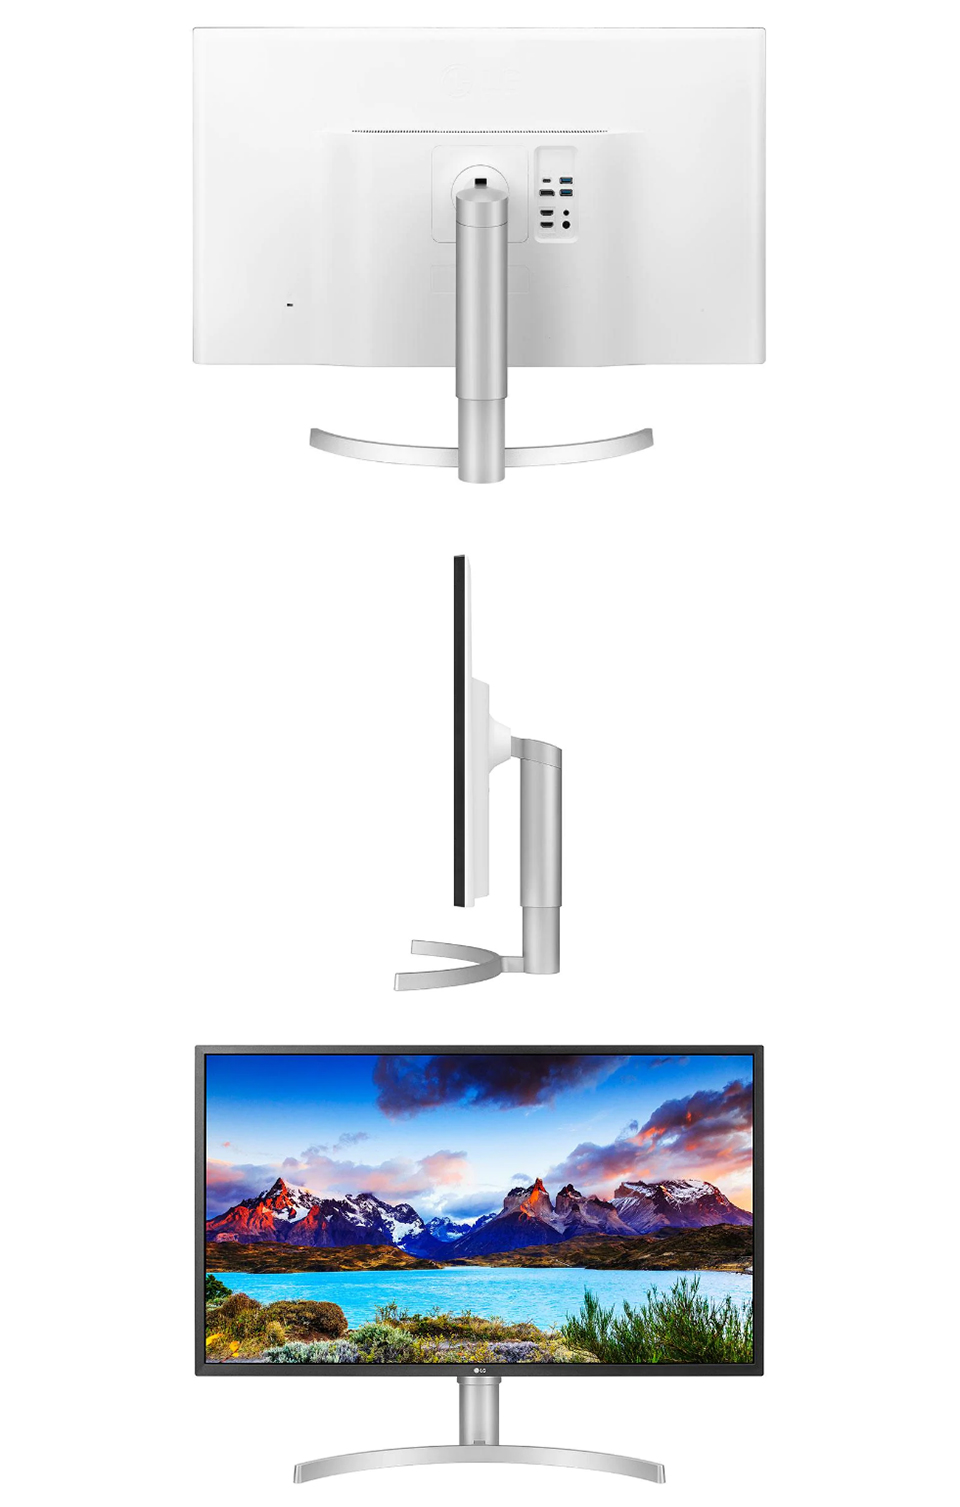 LG 32UL750-W UHD FreeSync HDR 32in Monitor with USB-C product